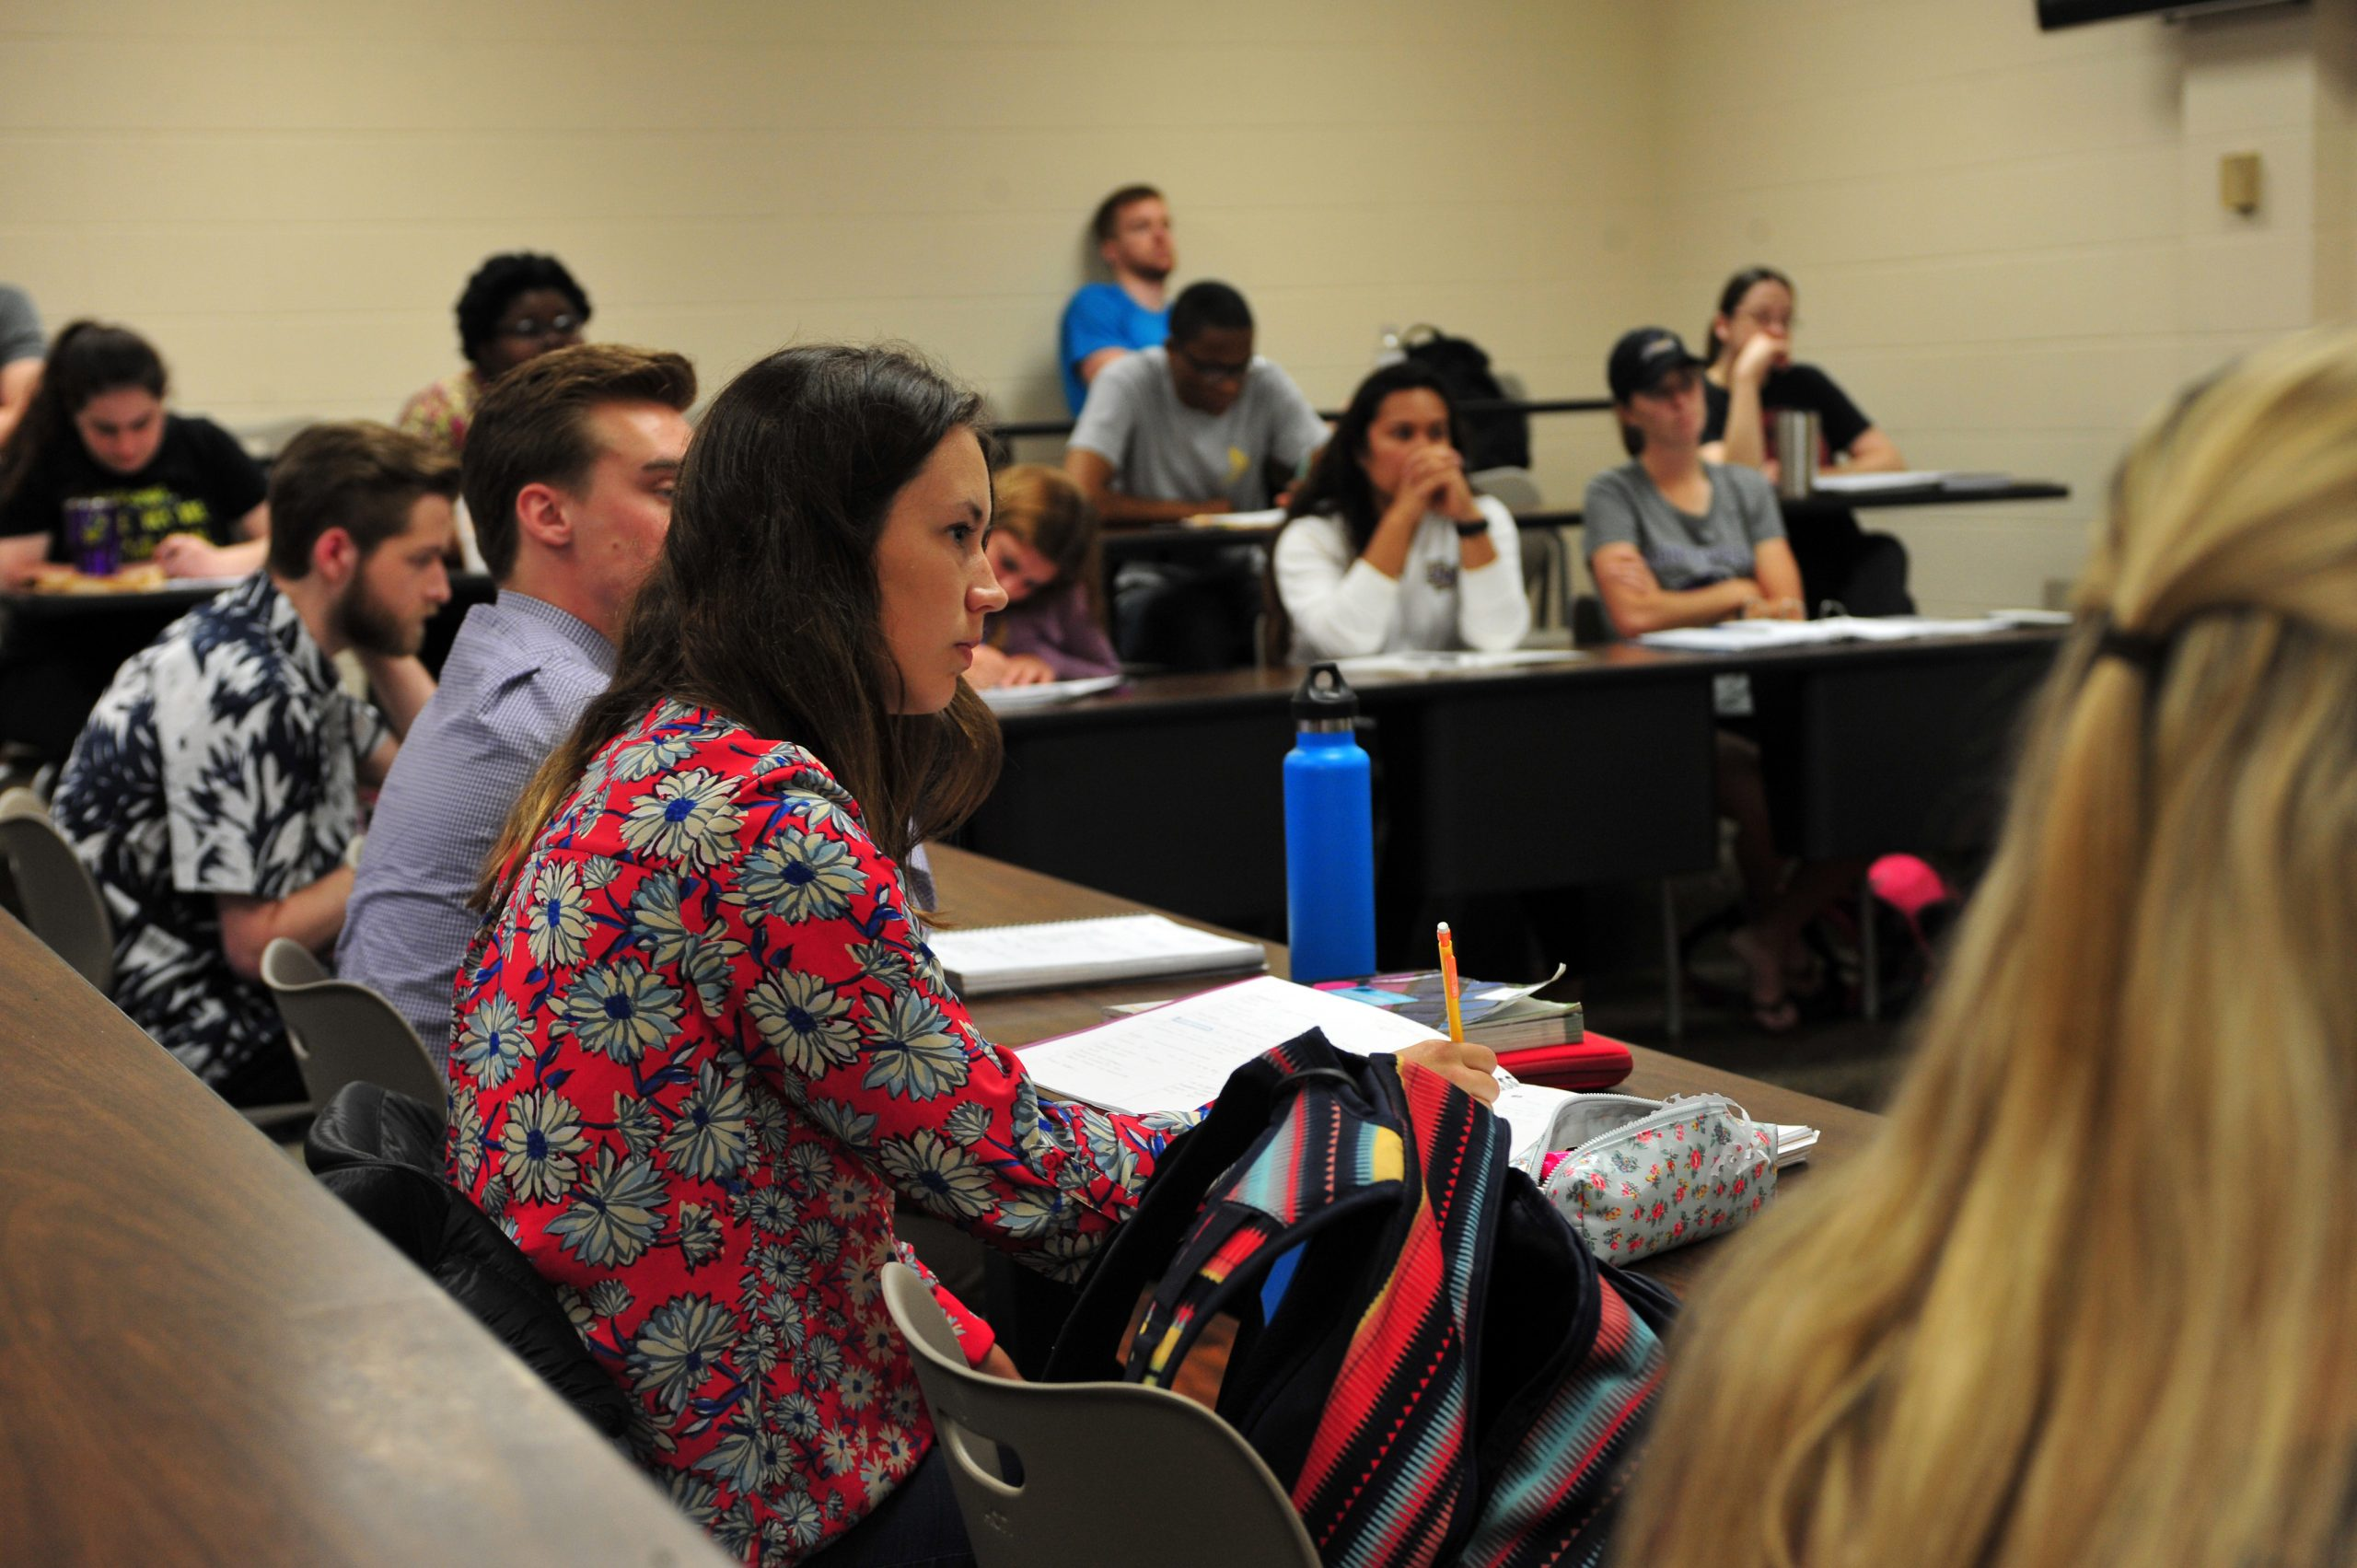 Montevallo students listening to a presentation.